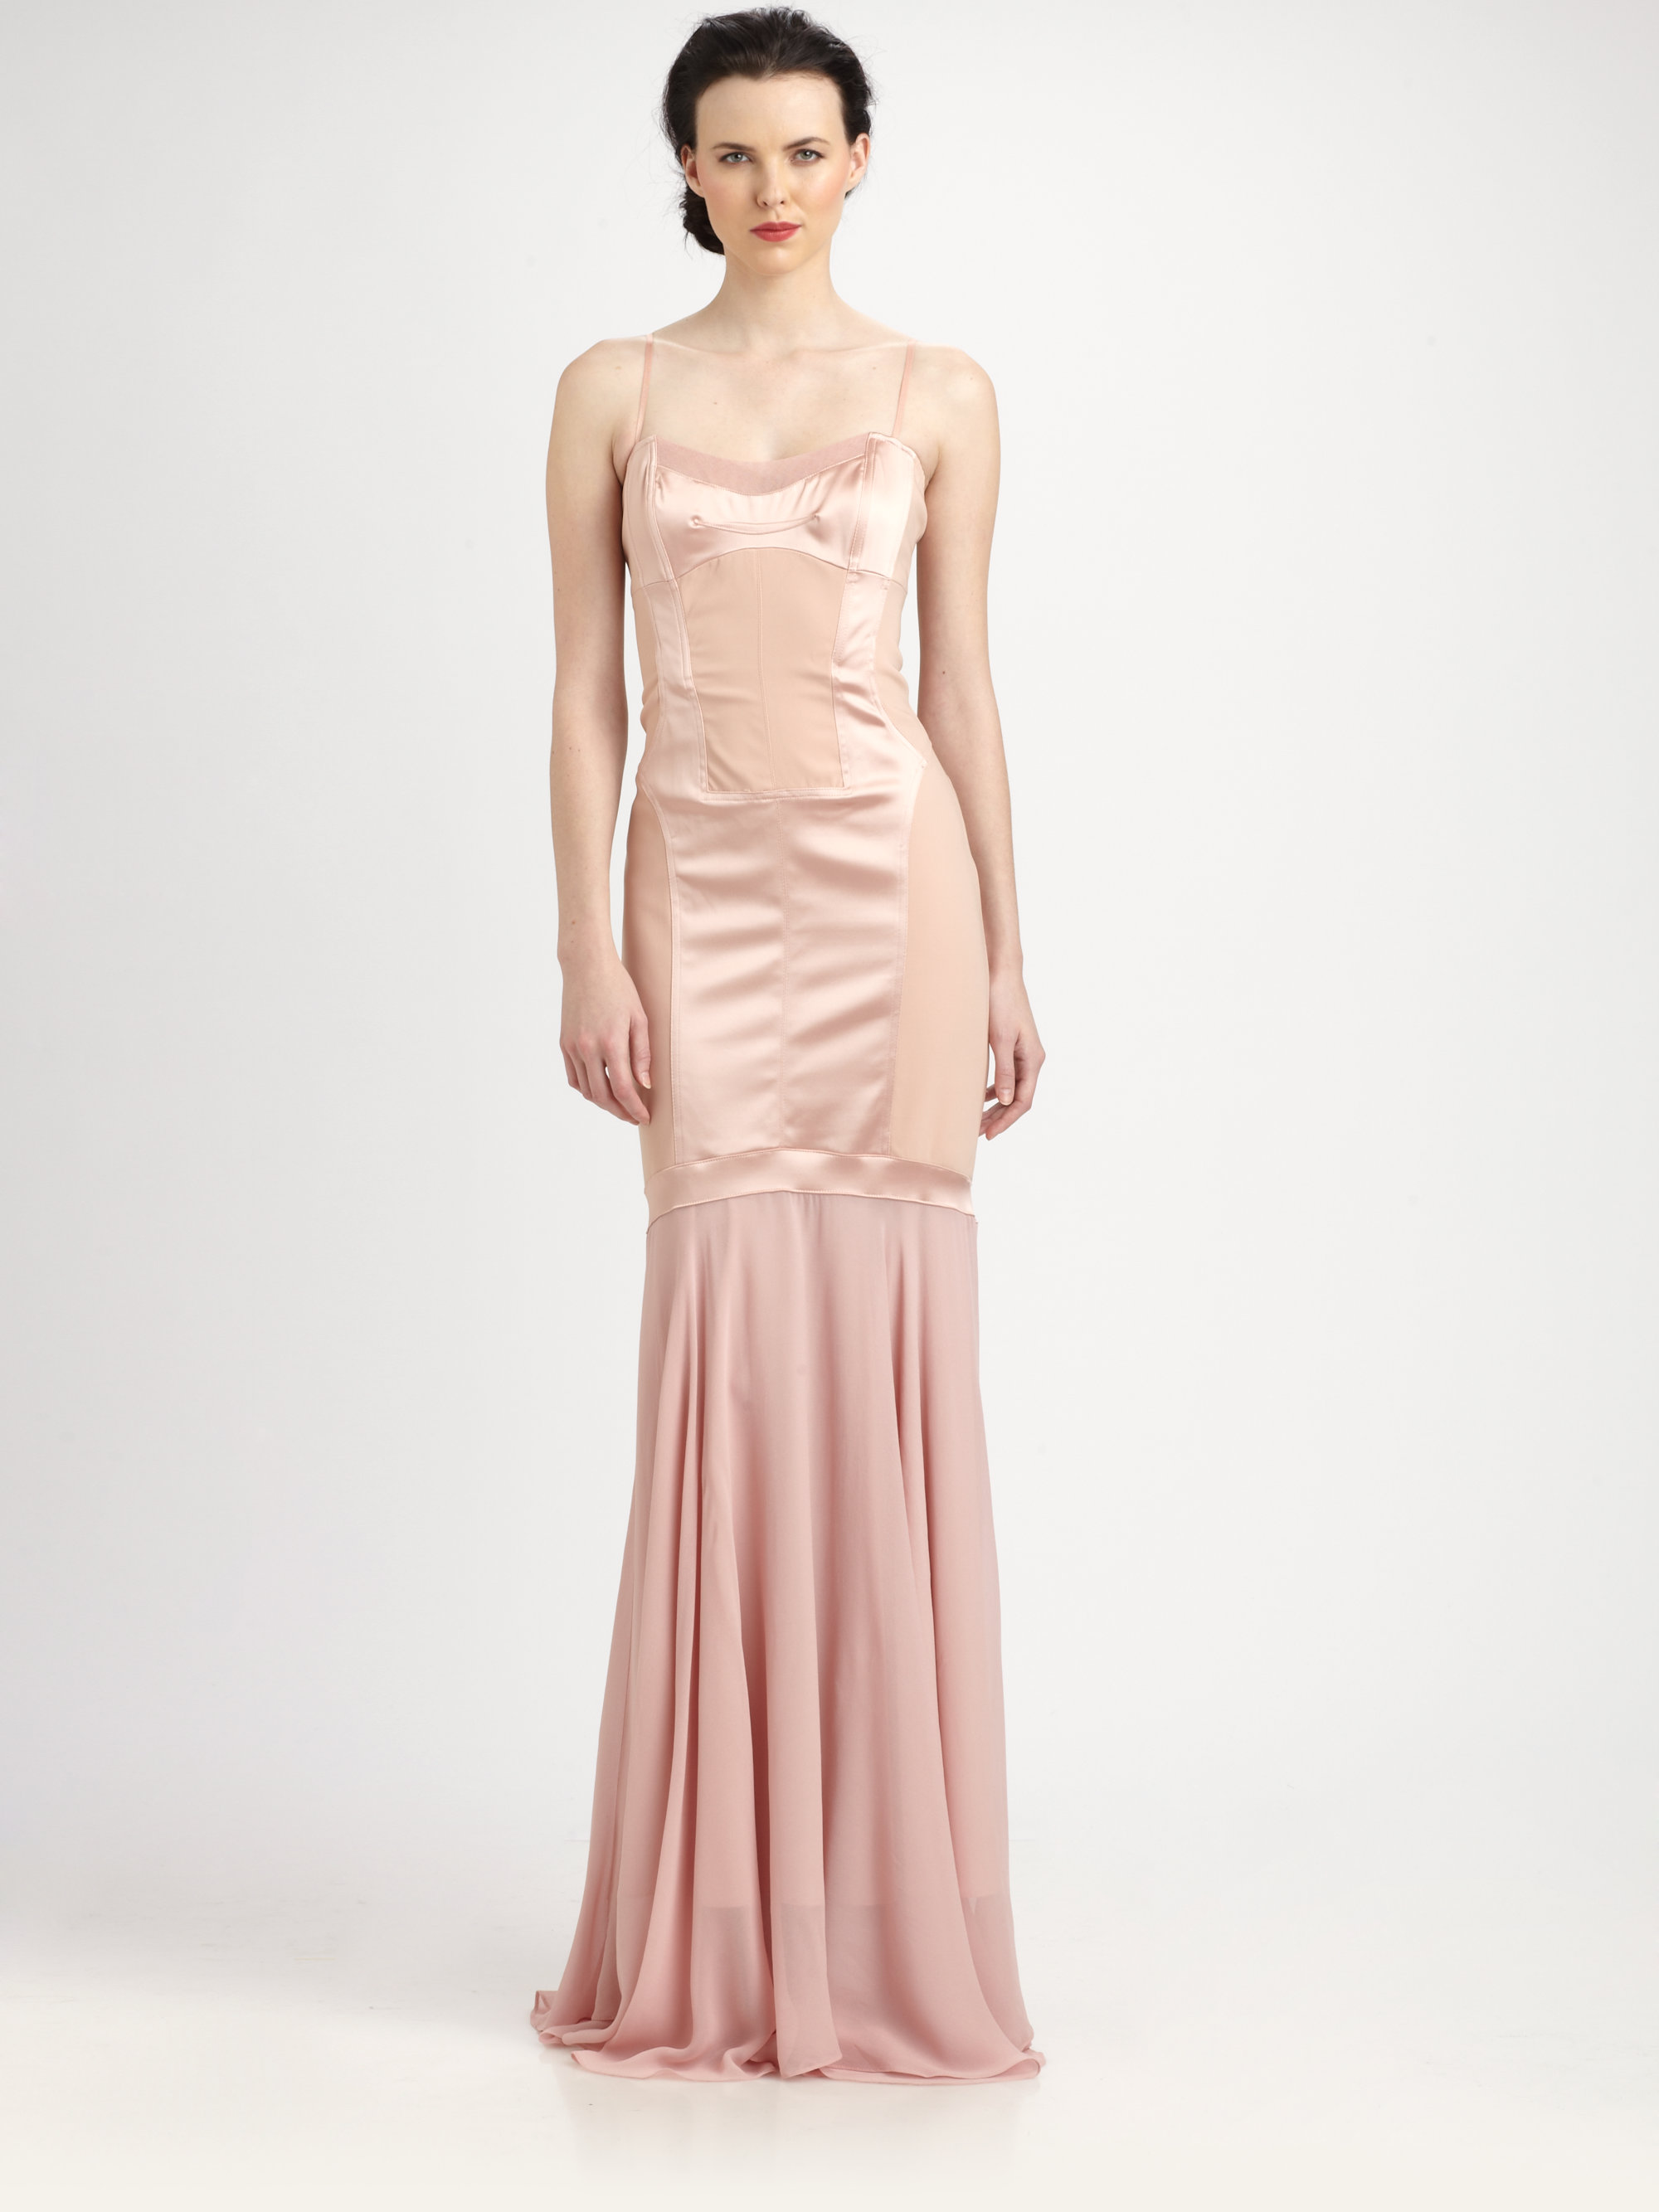 Attractive Nicole Miller Silk Gown Ornament - Images for wedding ...